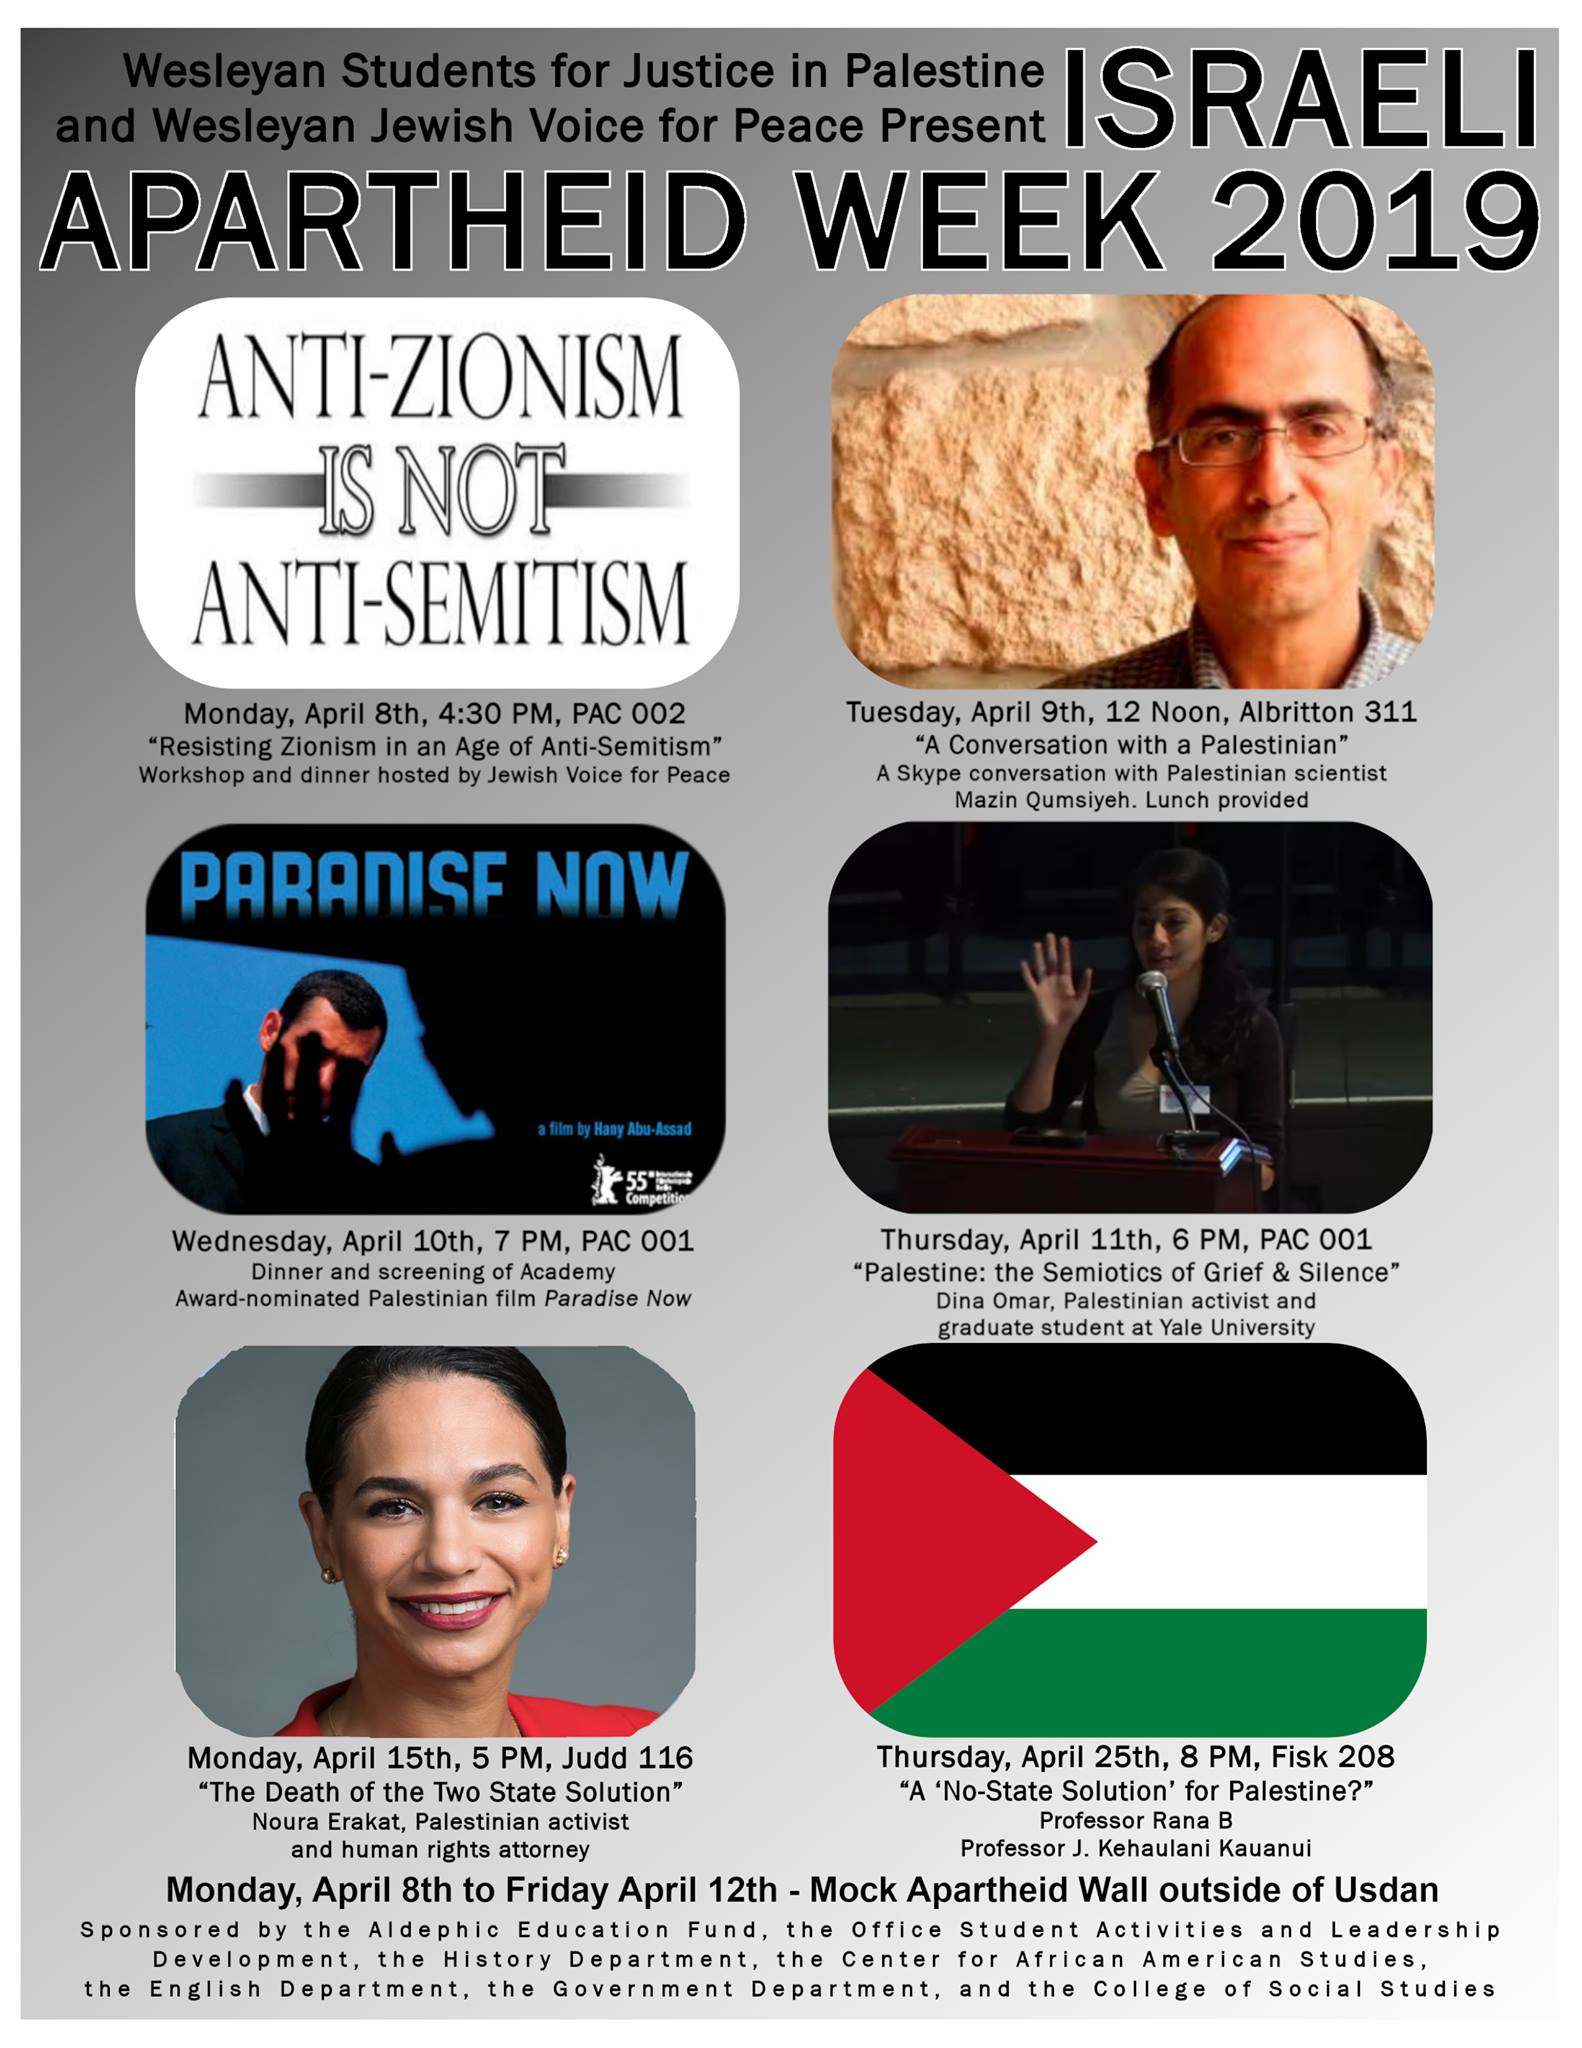 c/o facebook.com/Wesleyan Students for Justice in Palestine